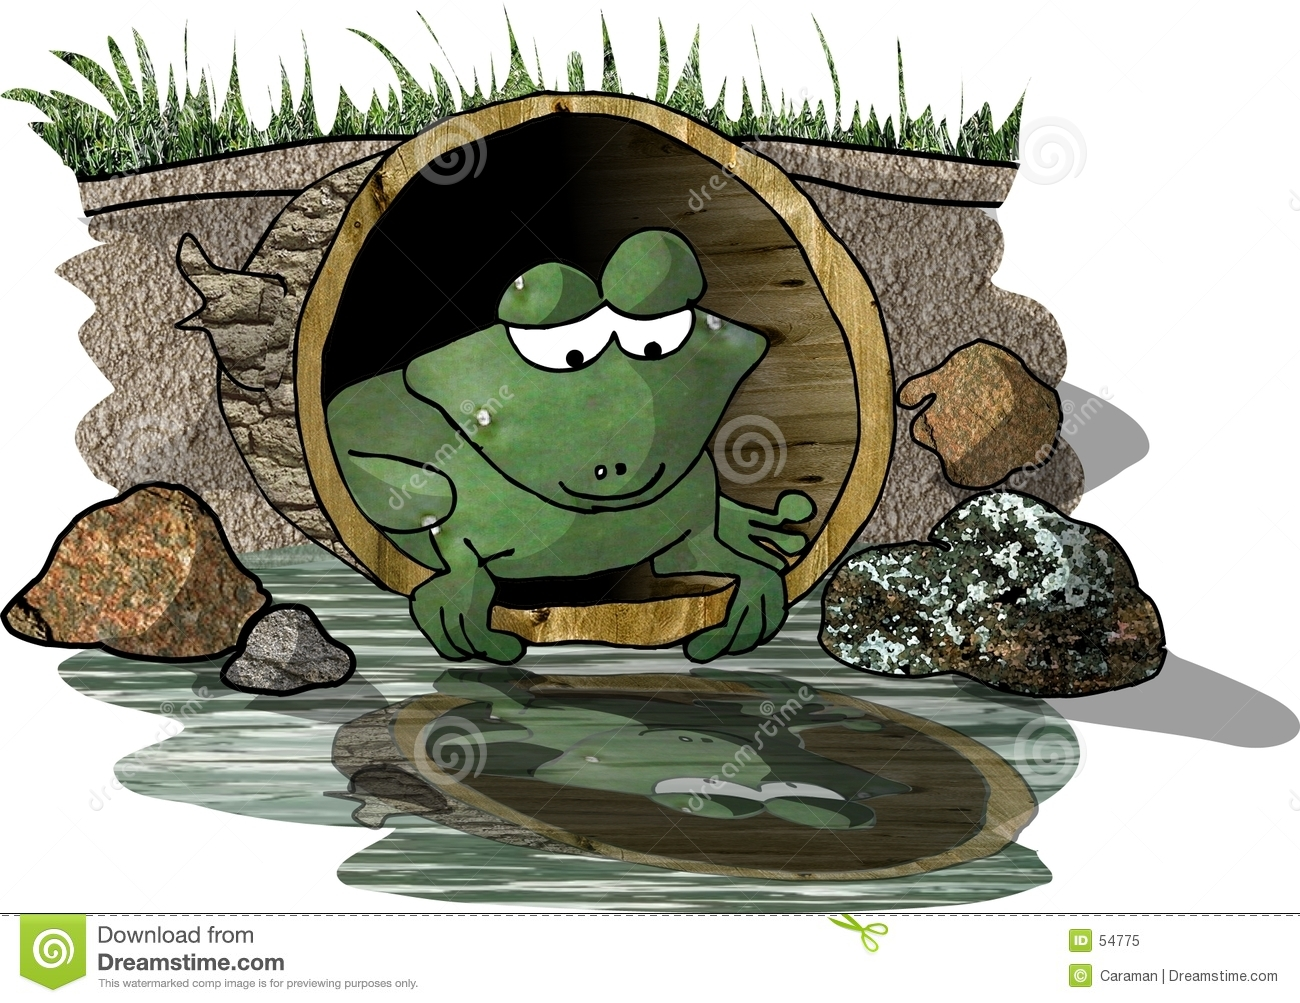 Download La Réflexion D'une Grenouille Illustration Stock - Illustration du drôle, cartoon: 54775